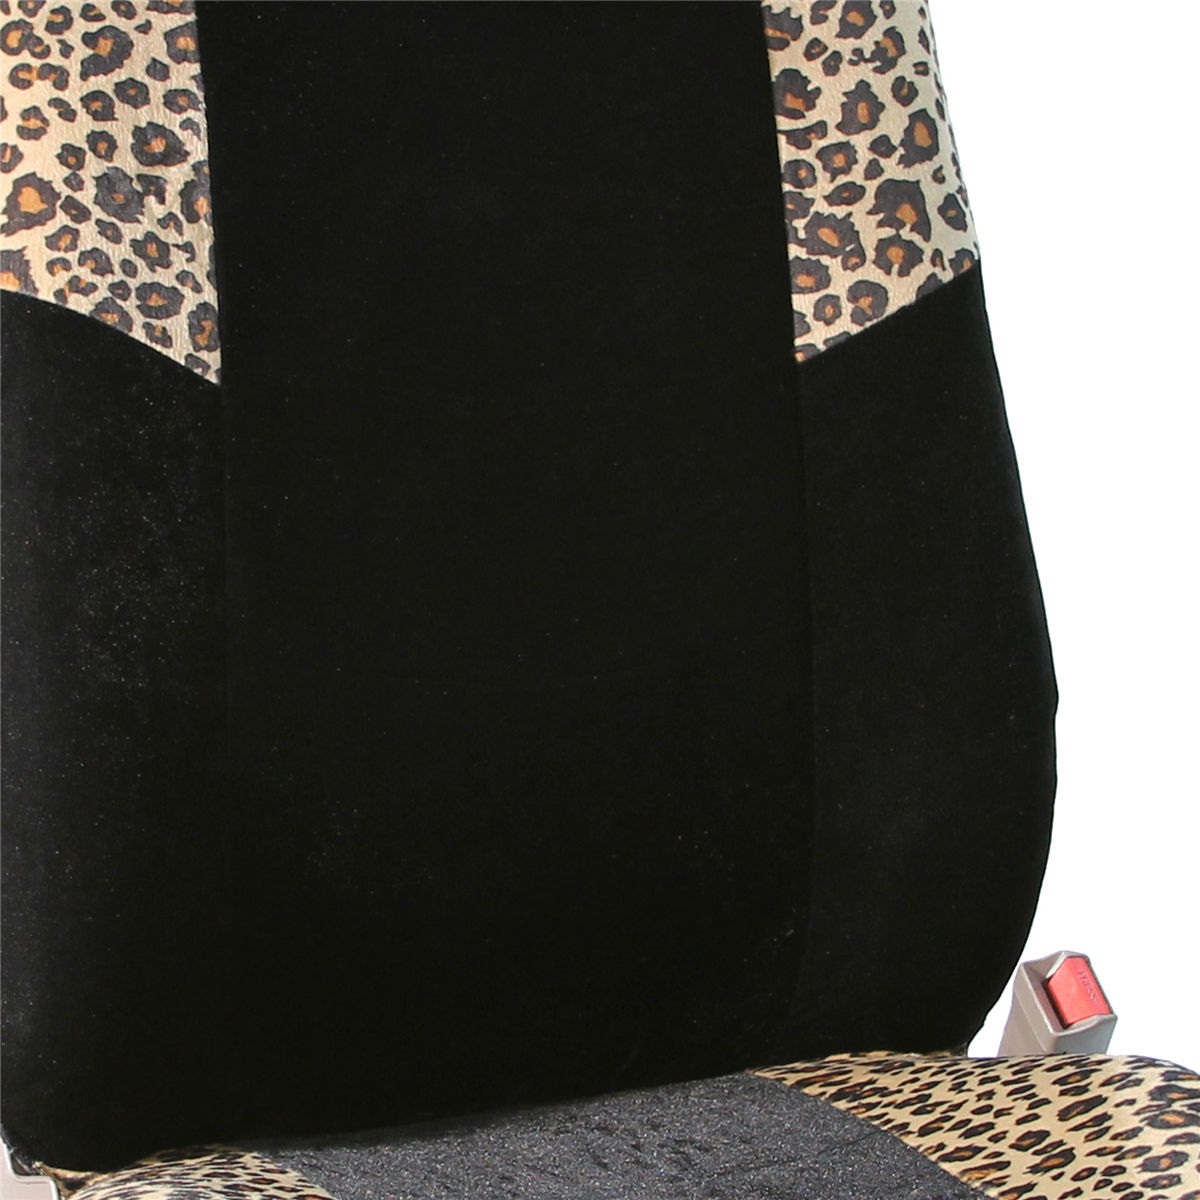 Lush Velour Seat Covers - Full Set material